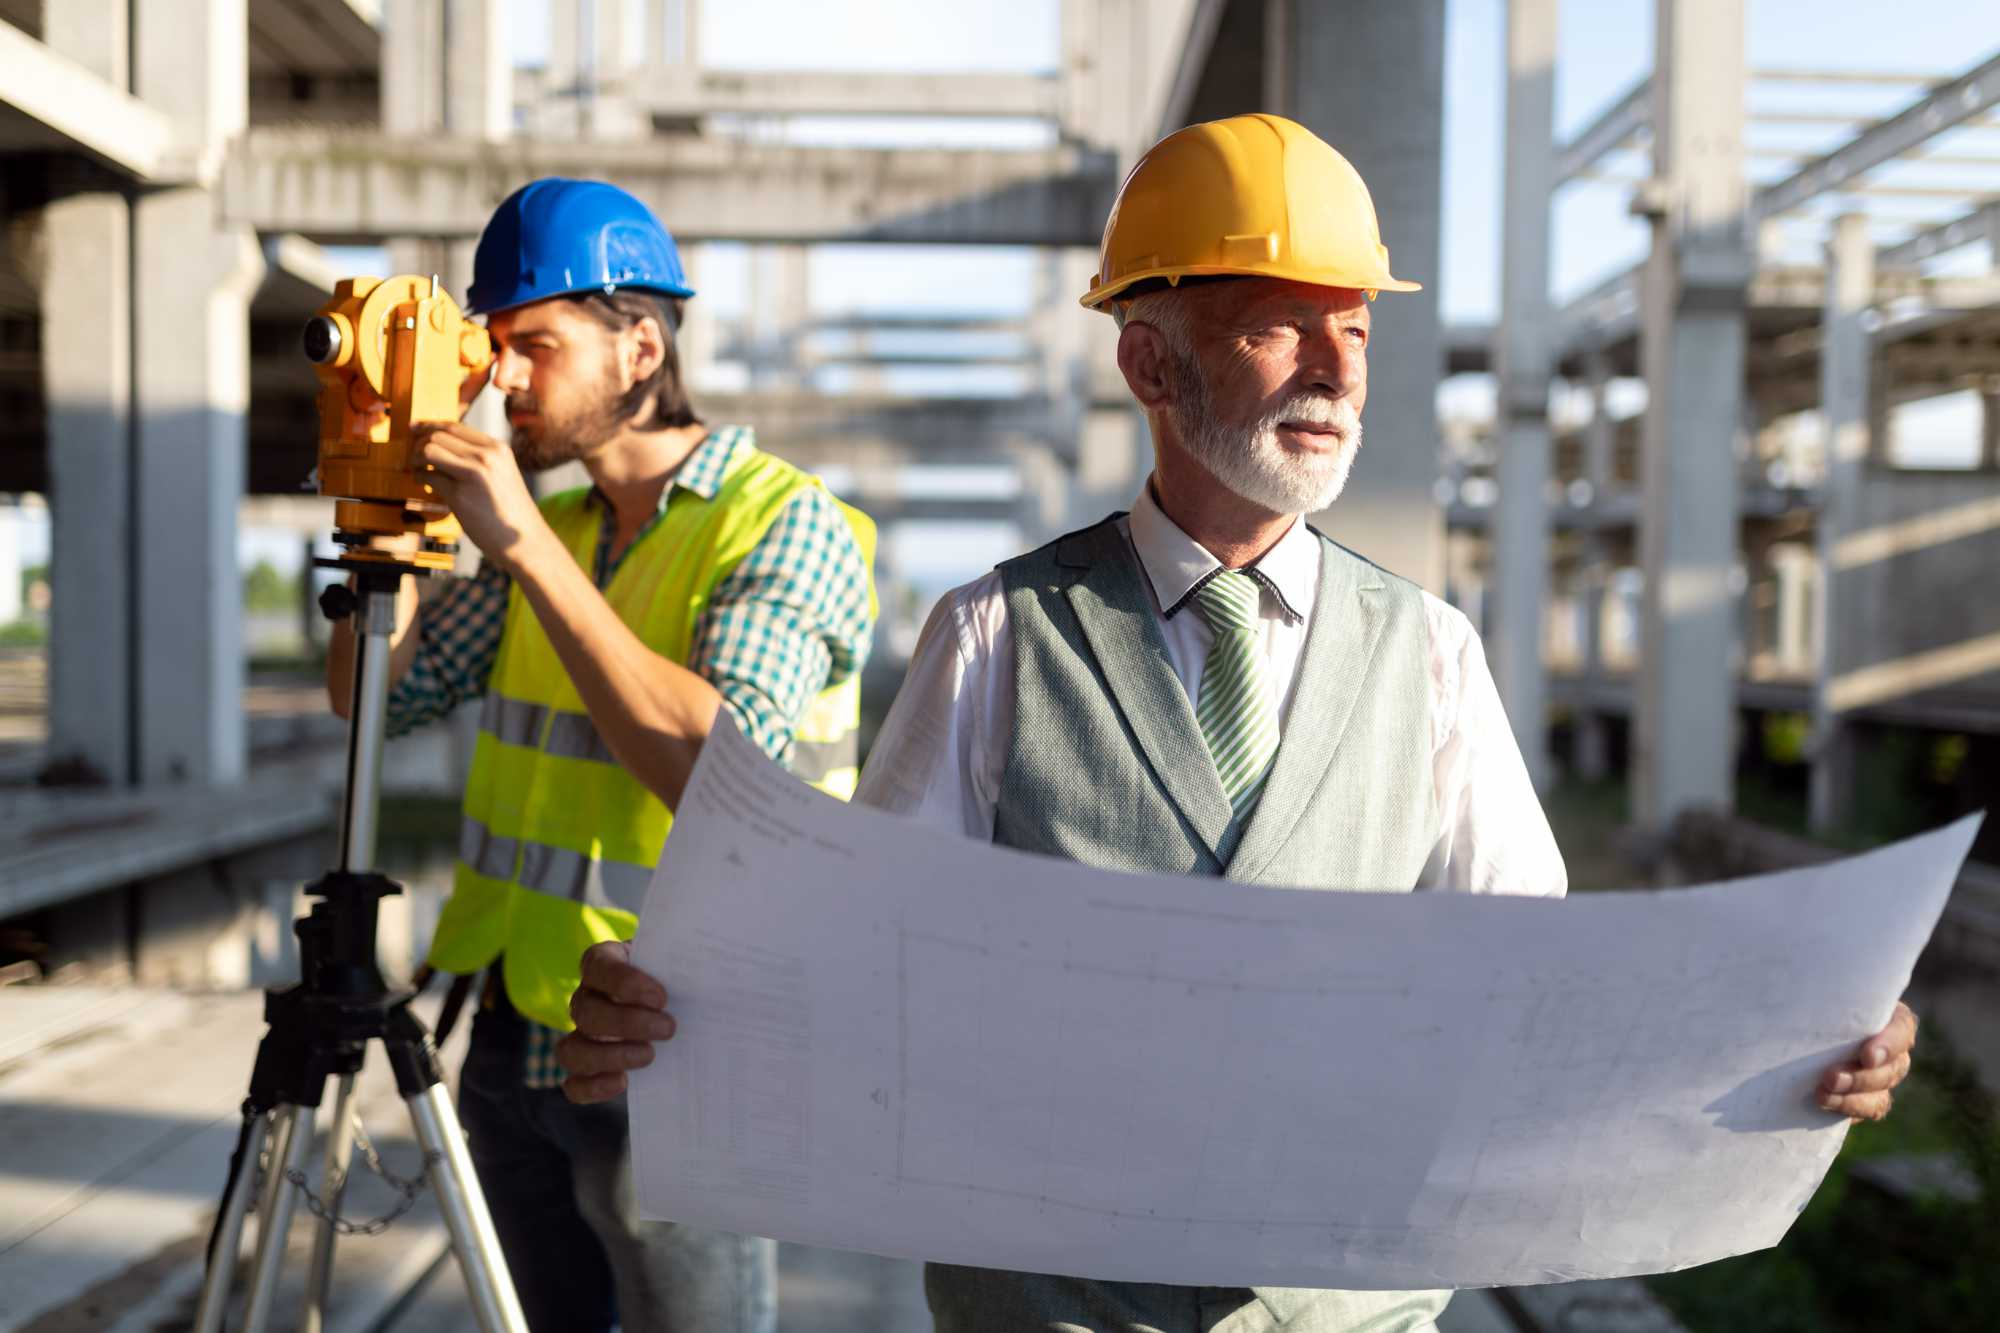 two-construction-engineer-working-in-construction-8TCUPRJ.jpg